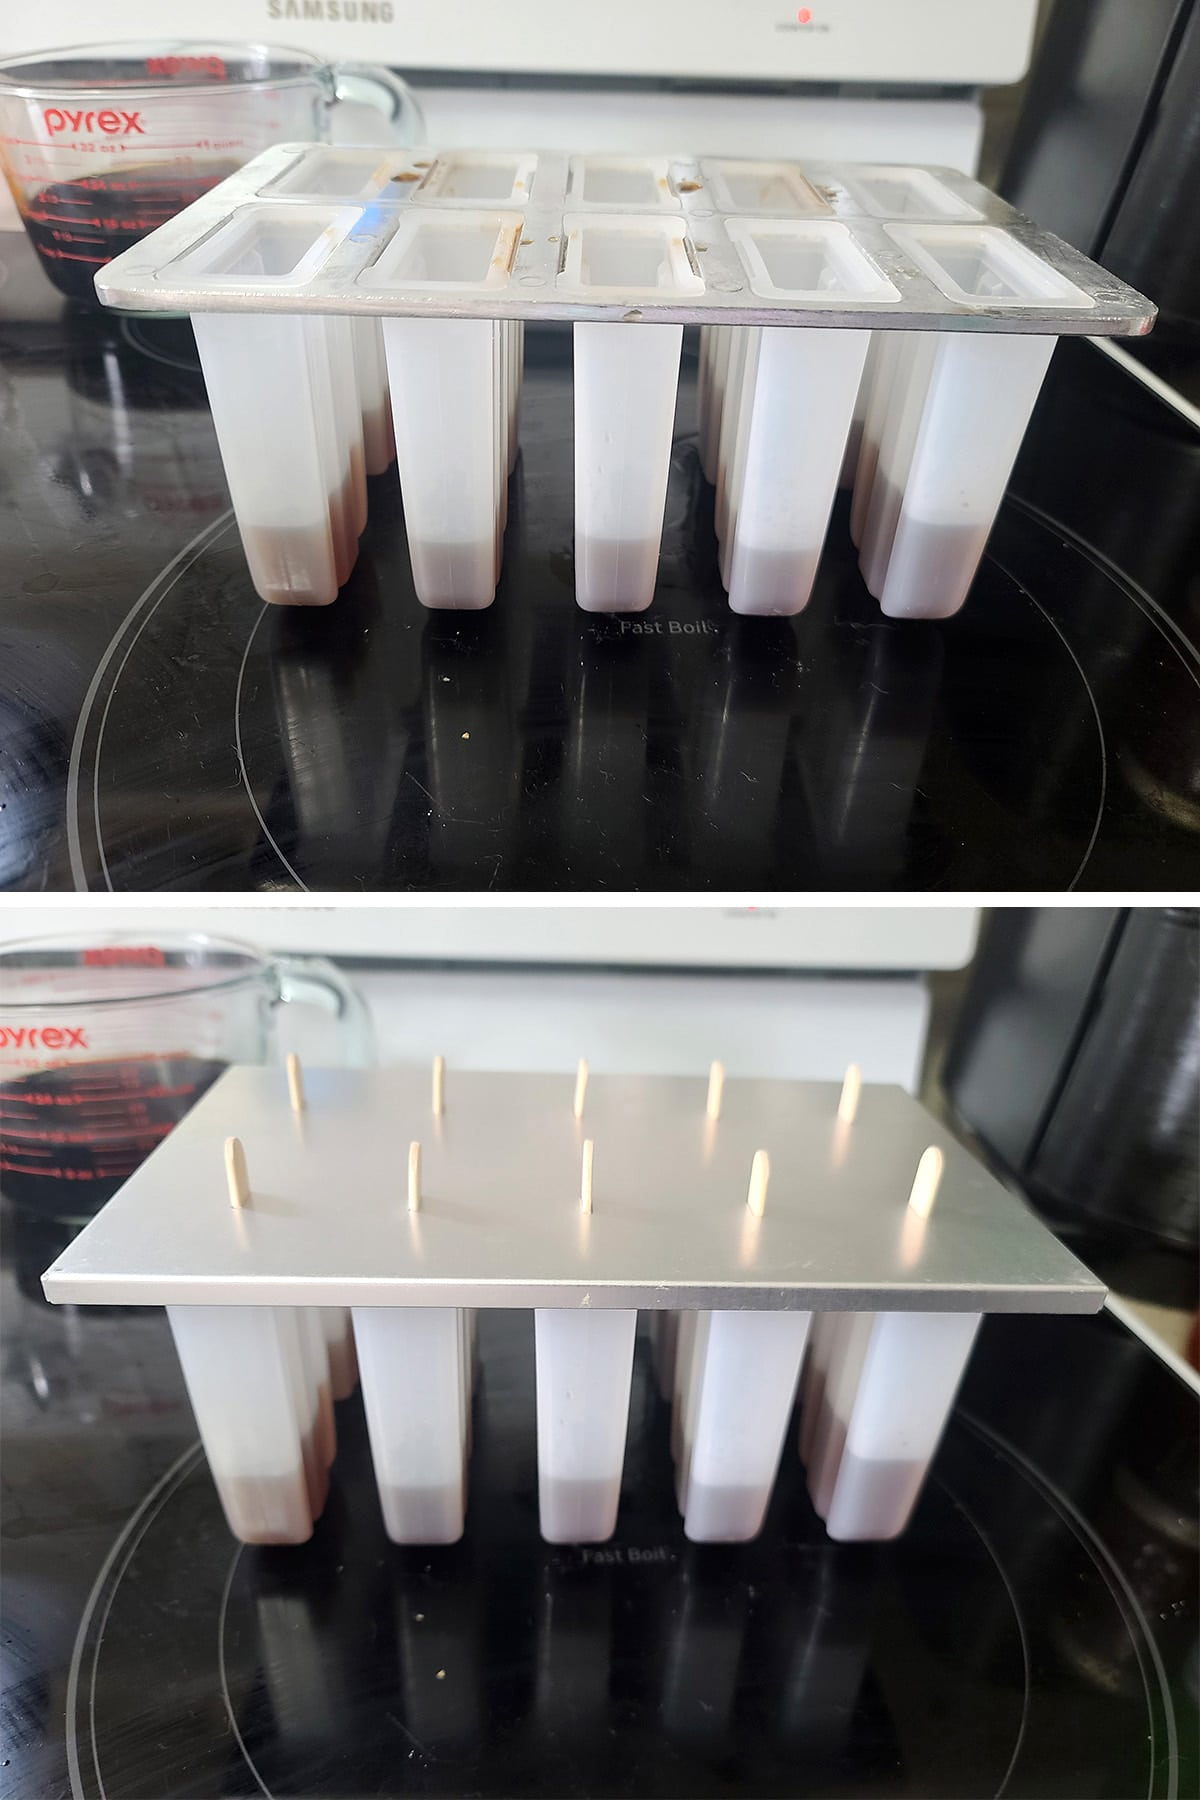 A two part image showing root beer mixture in the bottom ⅓ of the popsicle mold cavities, then the mold set up with a lid and popsicle sticks.